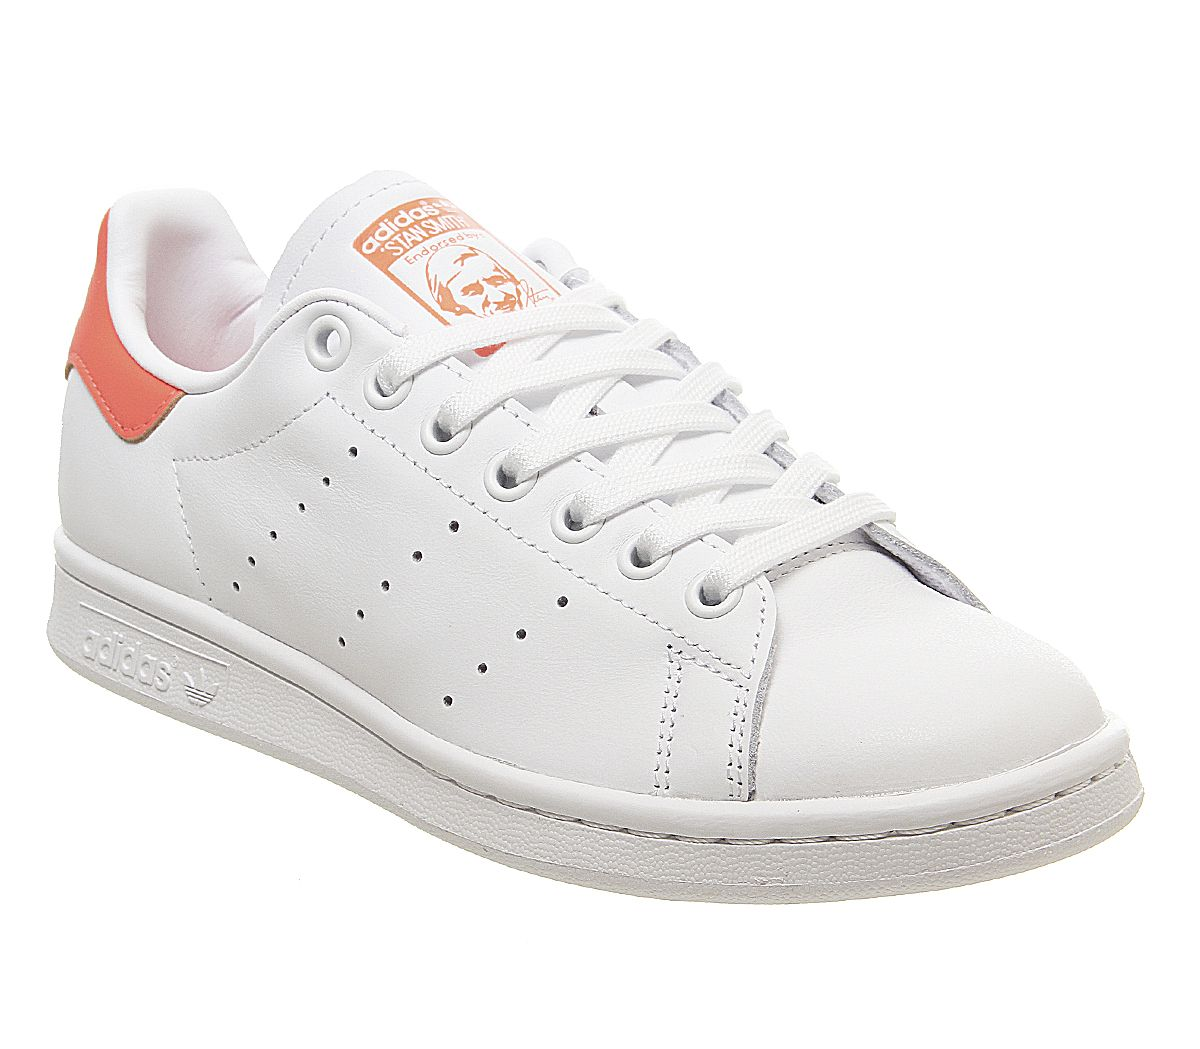 Détails sur Femmes adidas Stan Smith Baskets Blanc Solaire Orange Blanc  Baskets